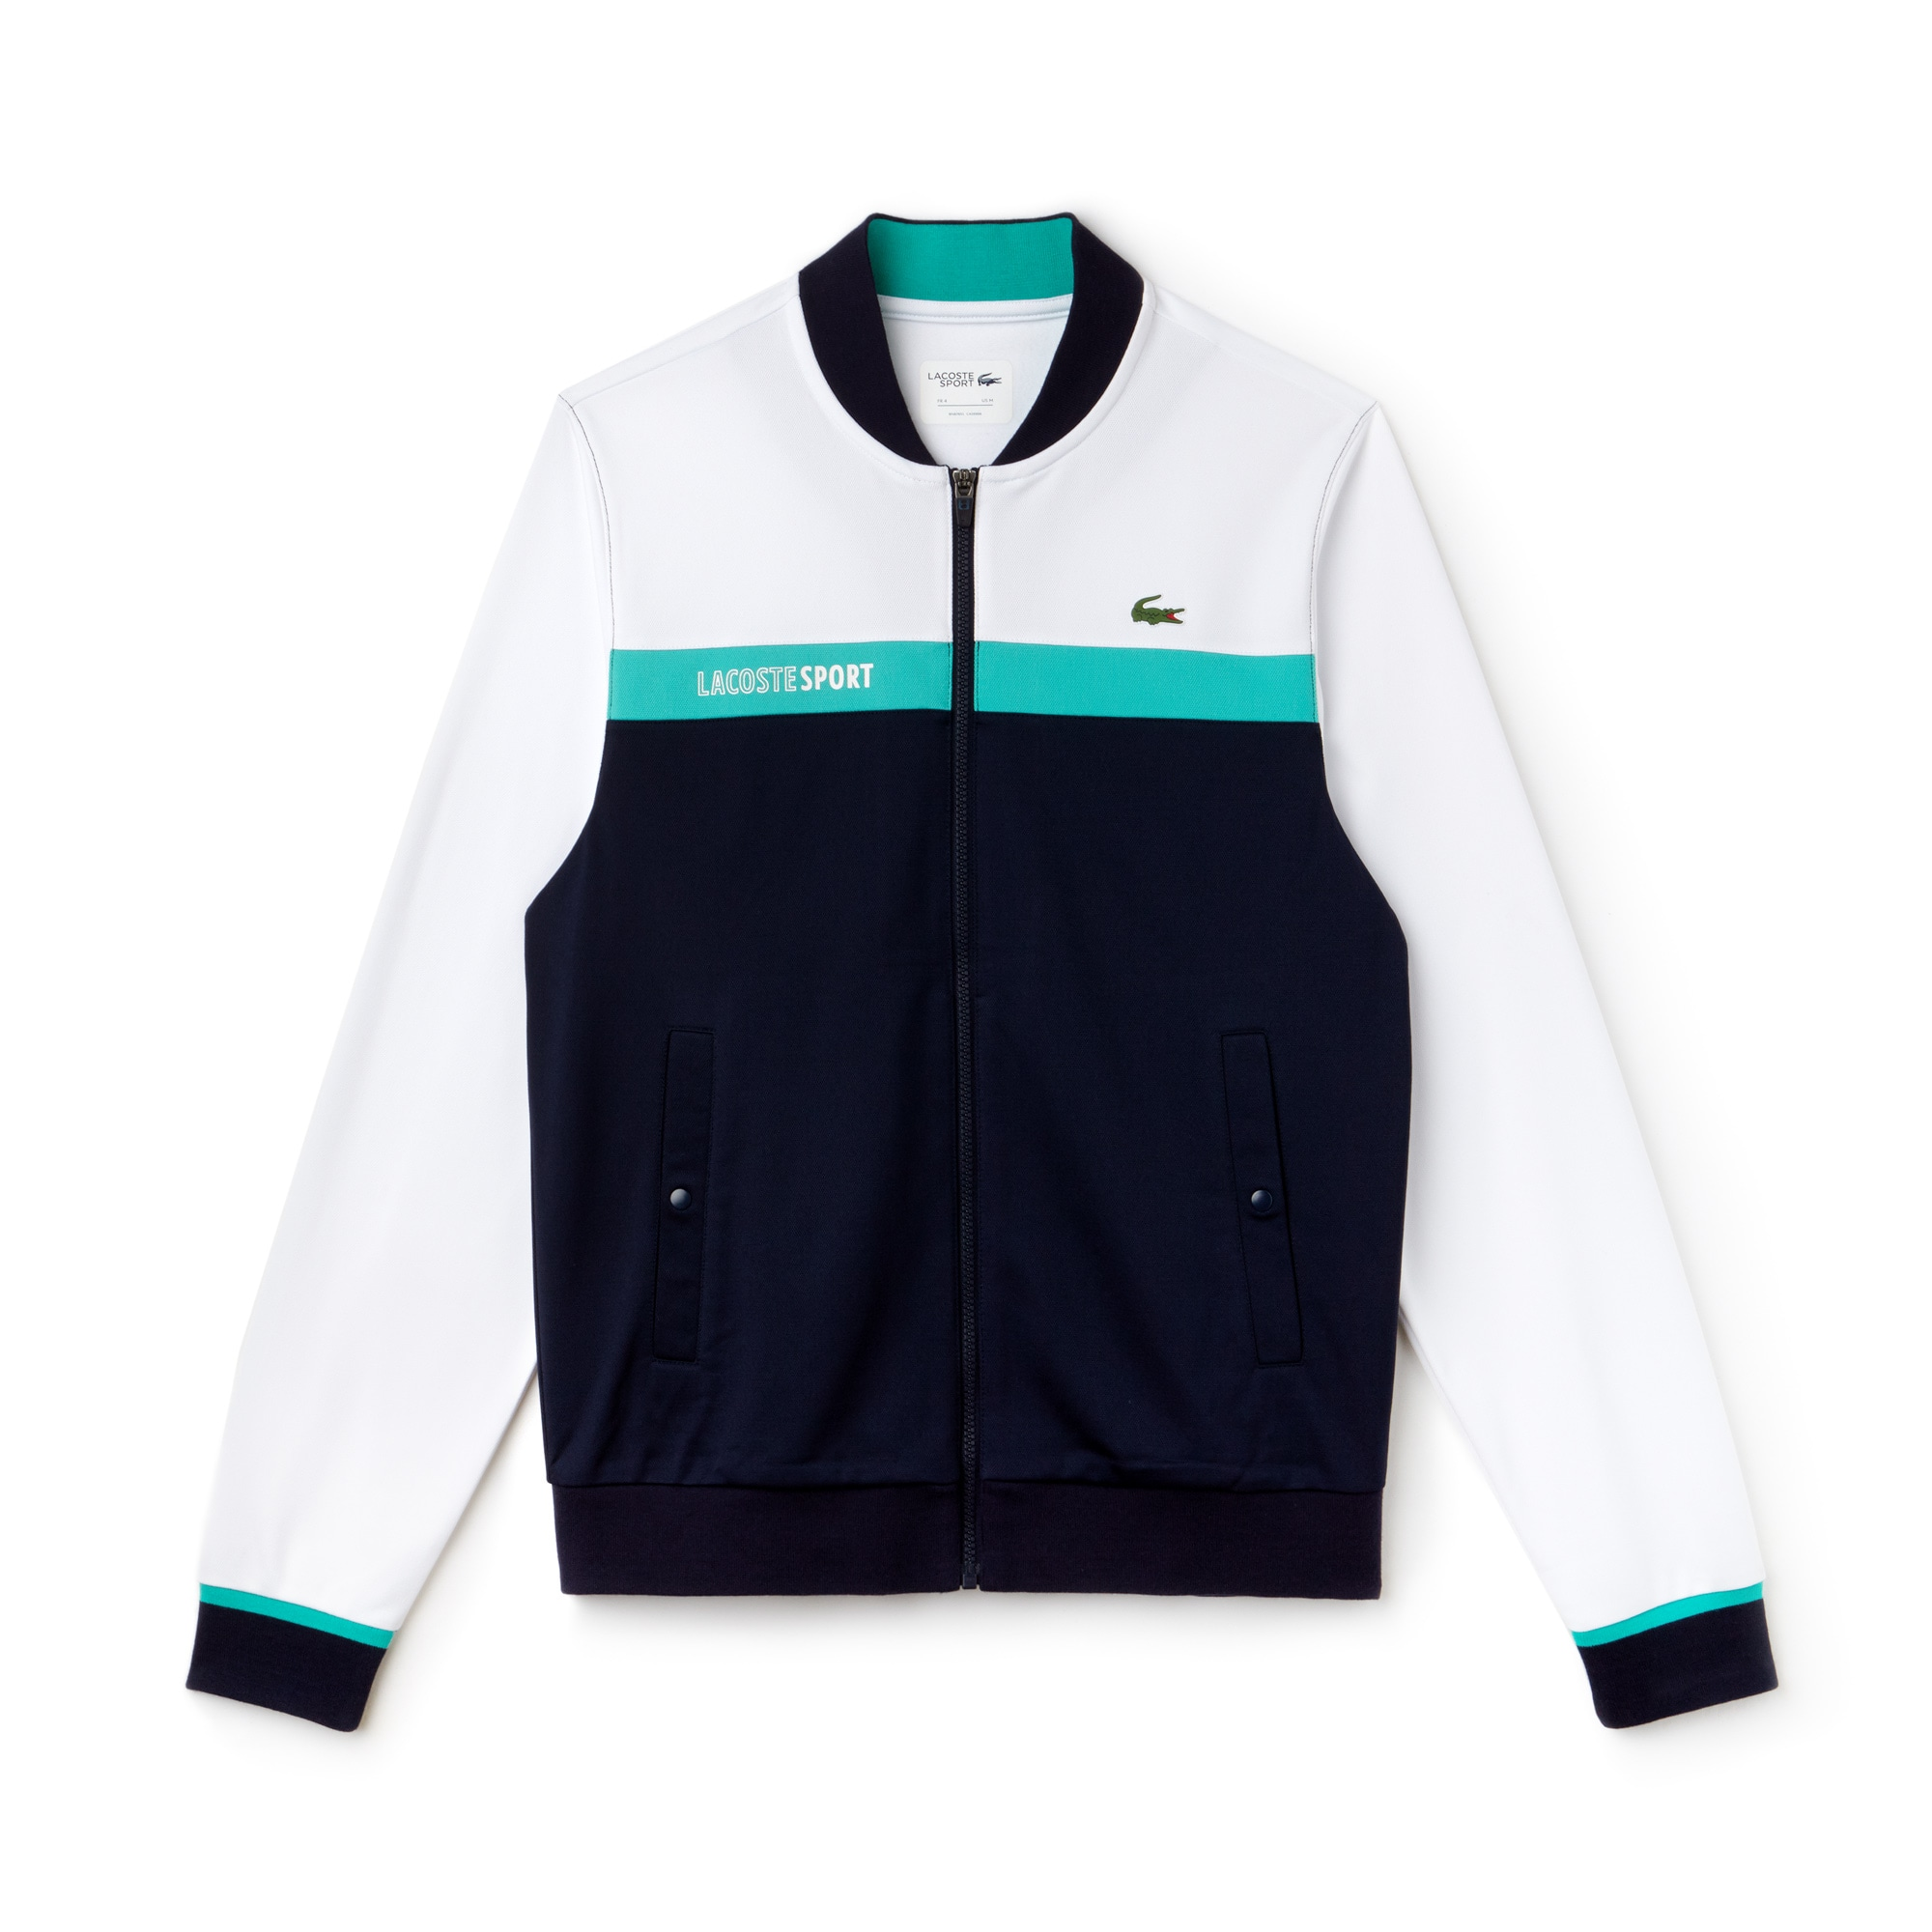 Men's Lacoste SPORT Colorblock Zip Piqué Tennis Sweatshirt